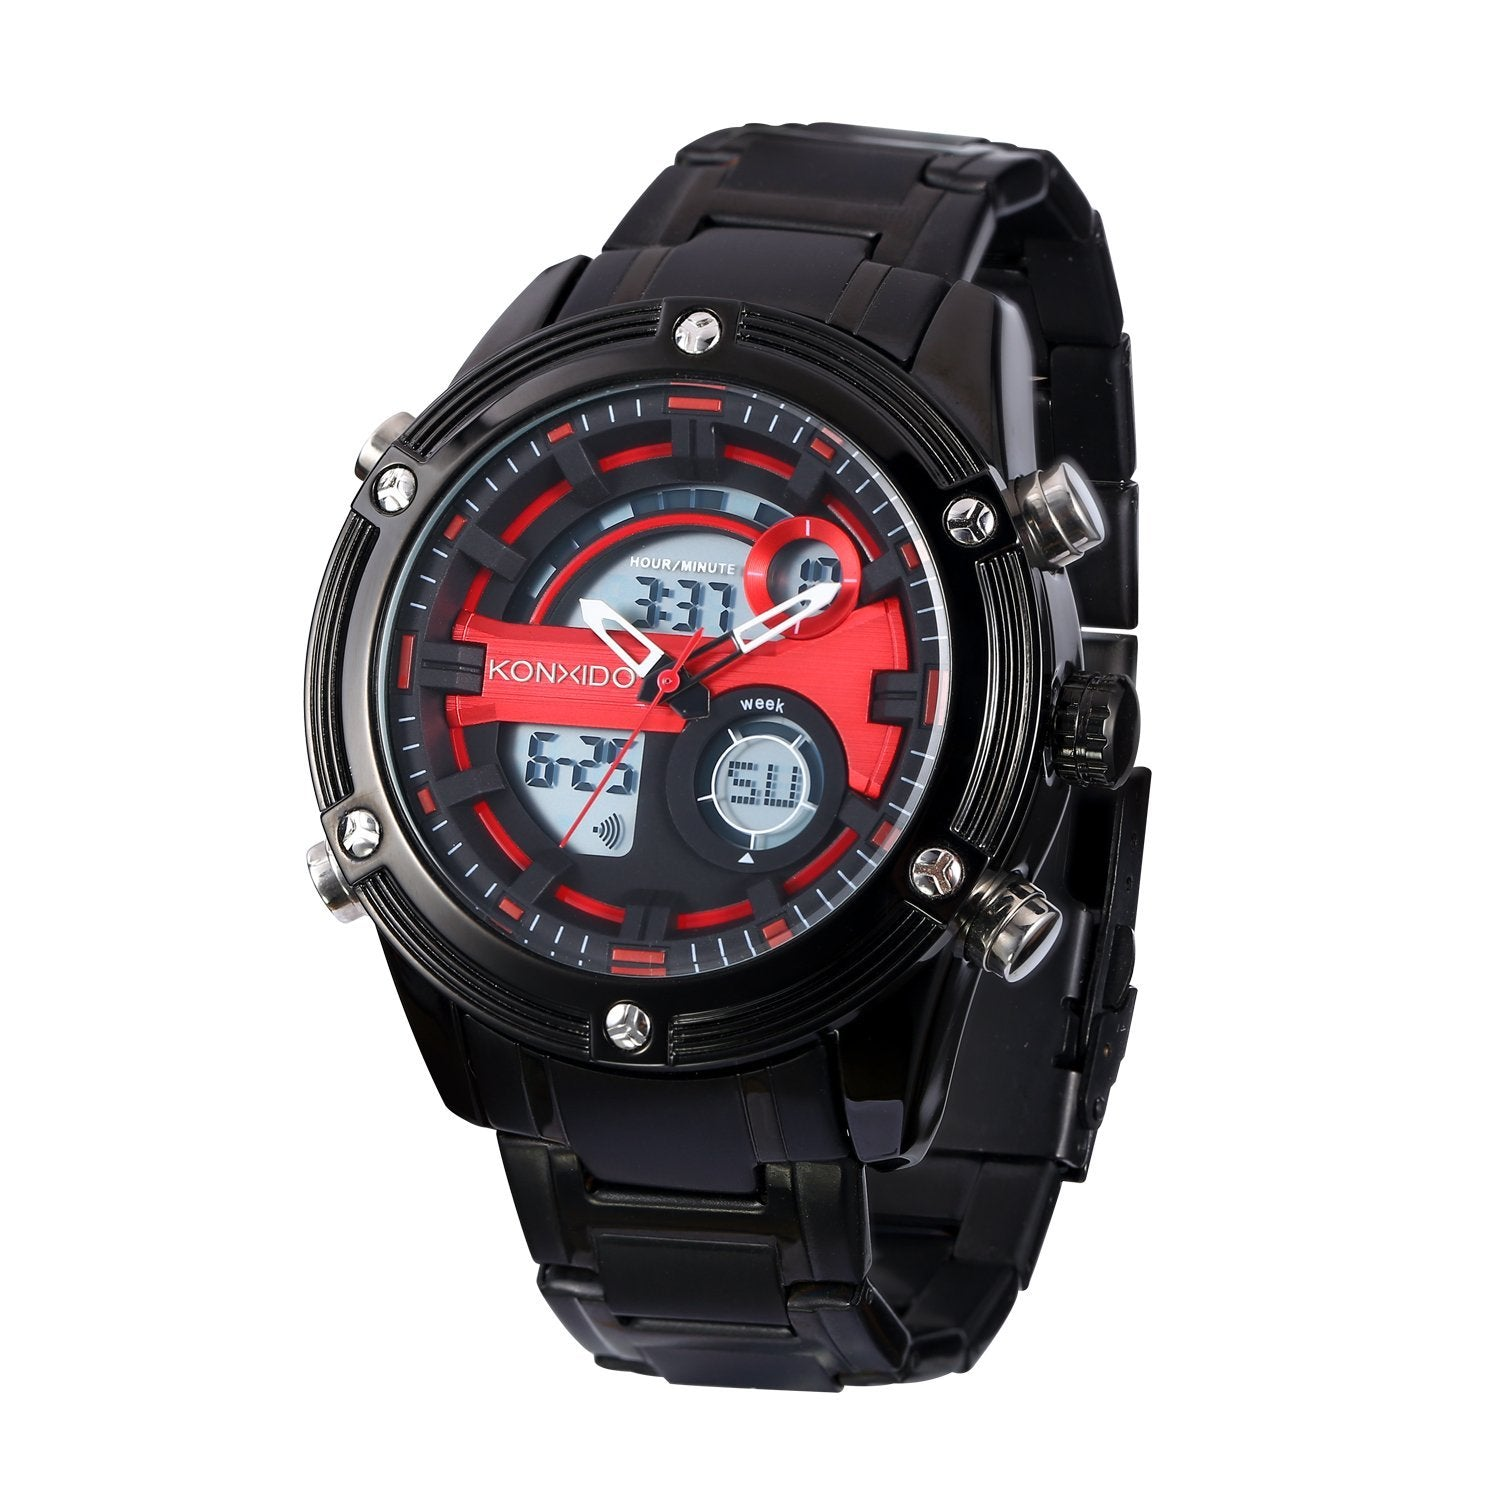 product sports online uaowqp digital military watch witty men watches store